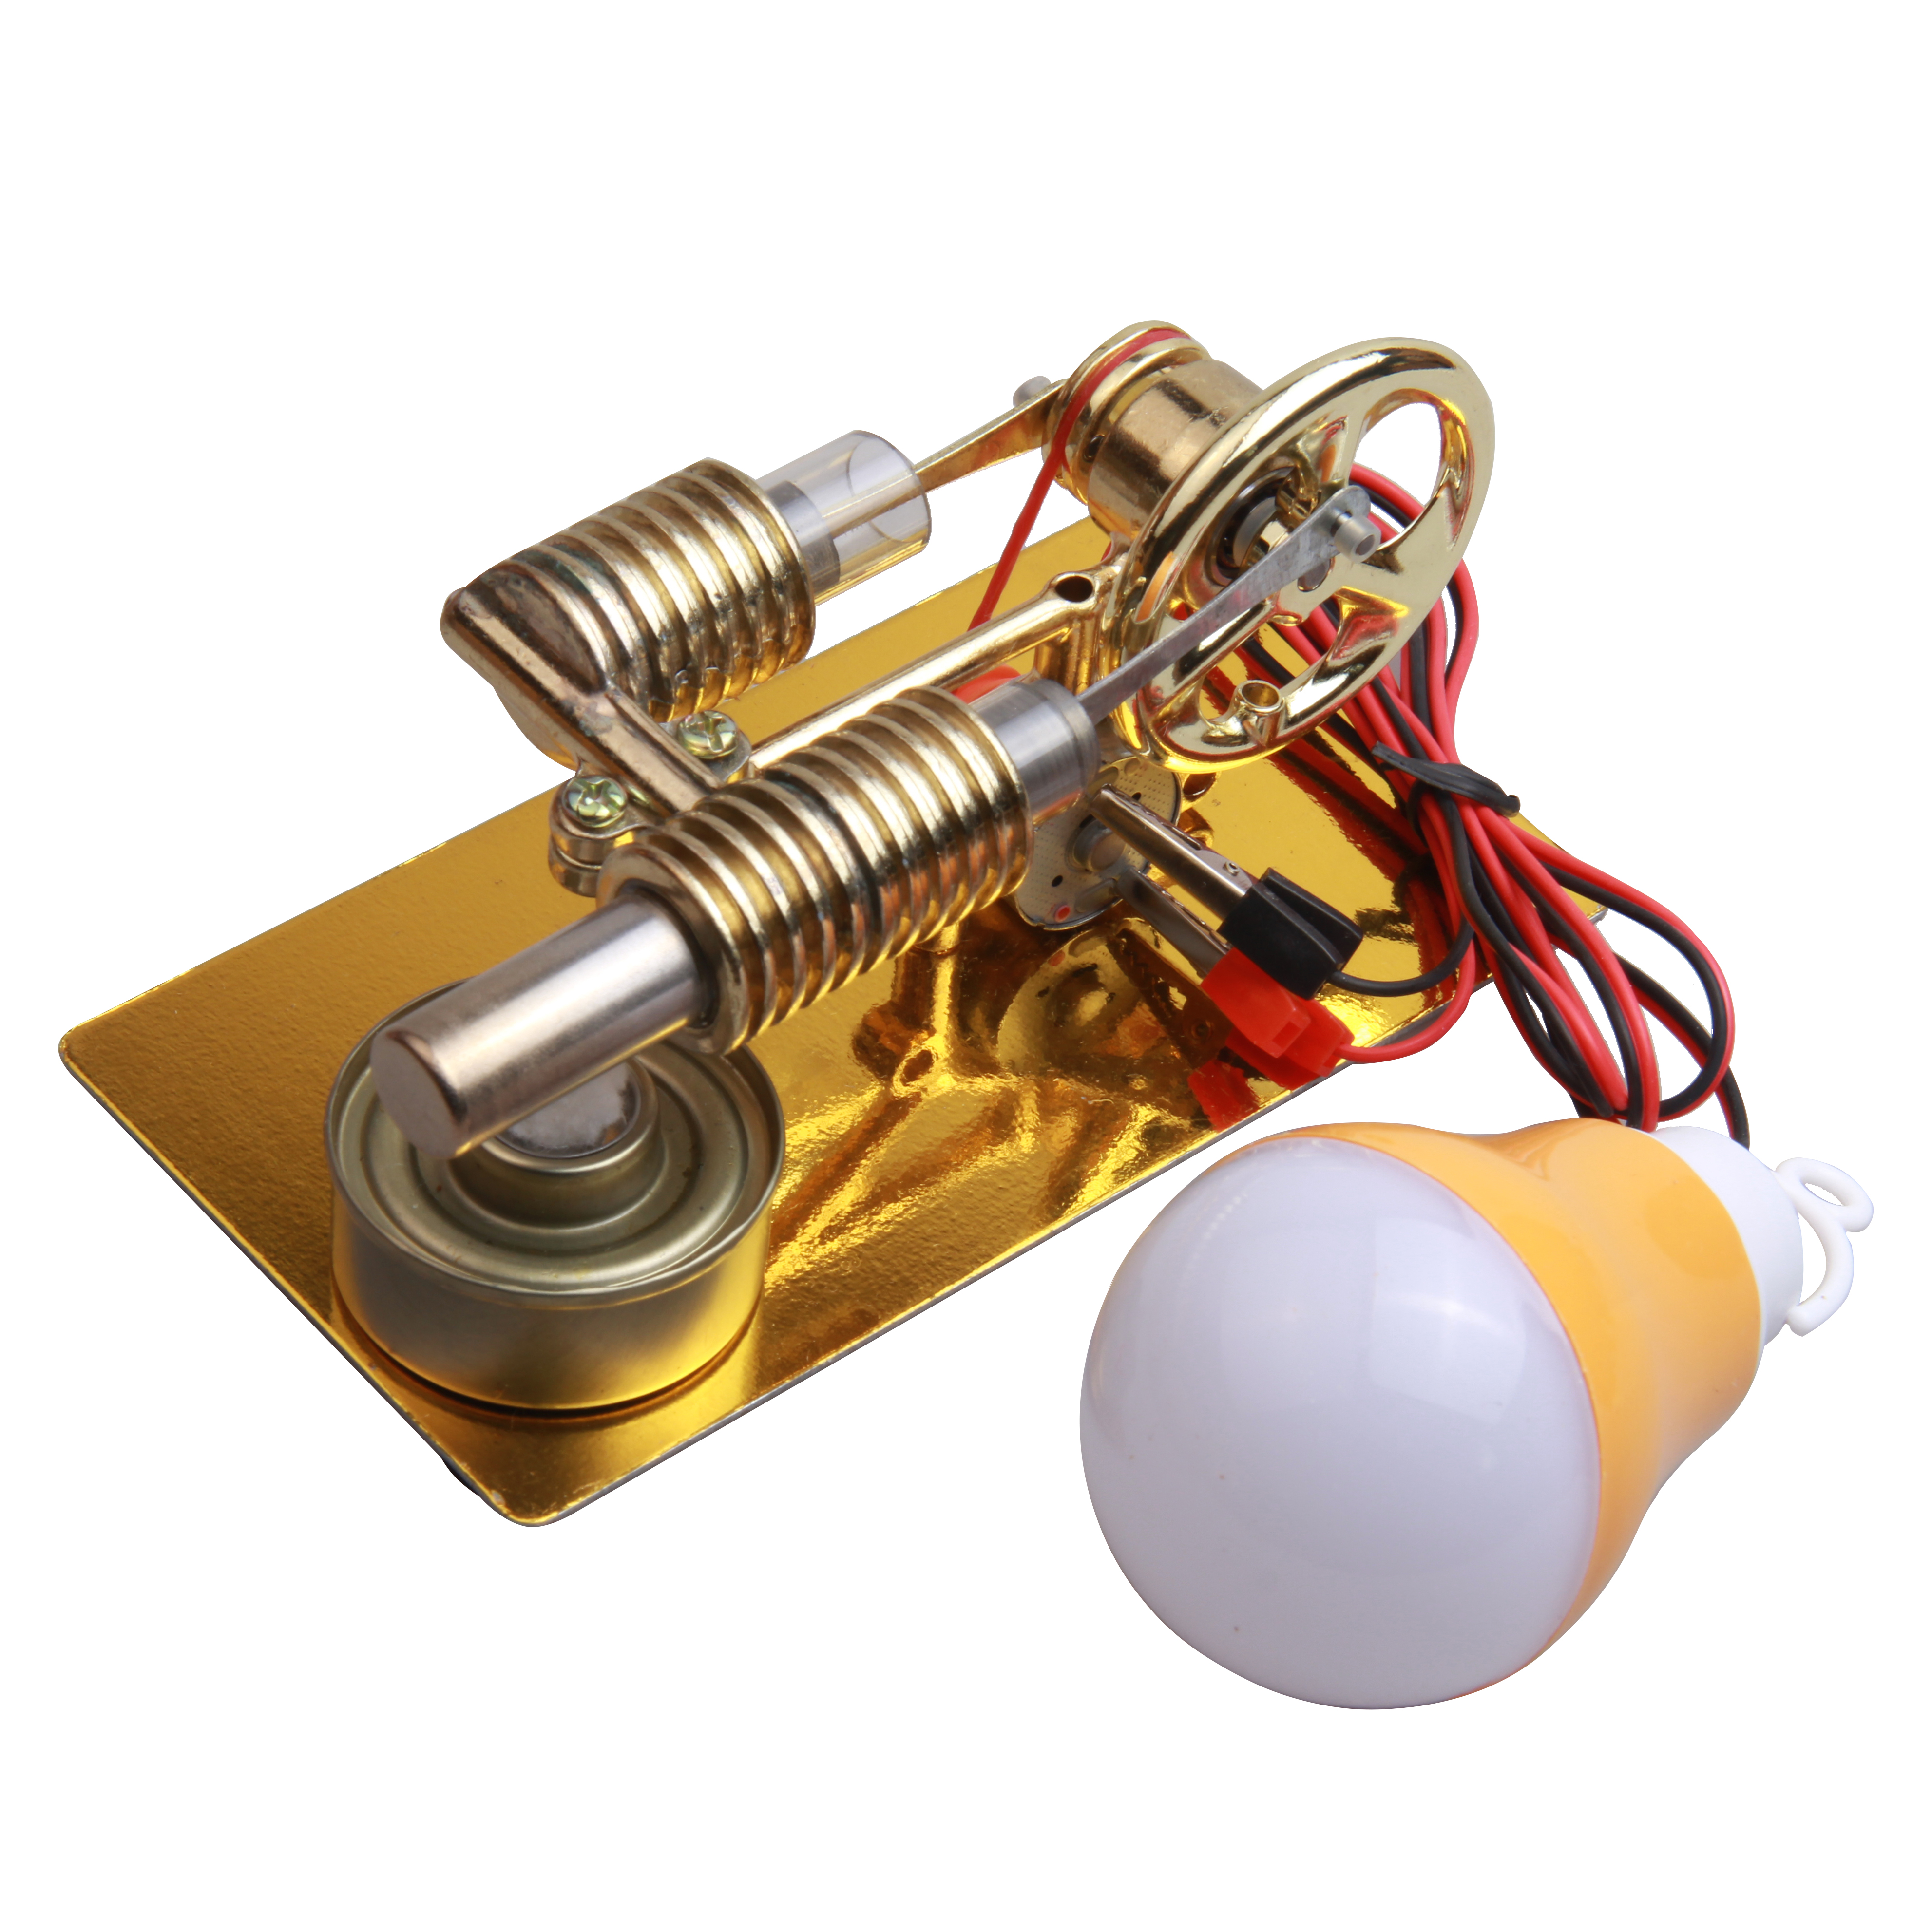 Mini Stirling Engine External Combustion Engine Microgenerator Birthday Present Steam Engine Model Science And School Education